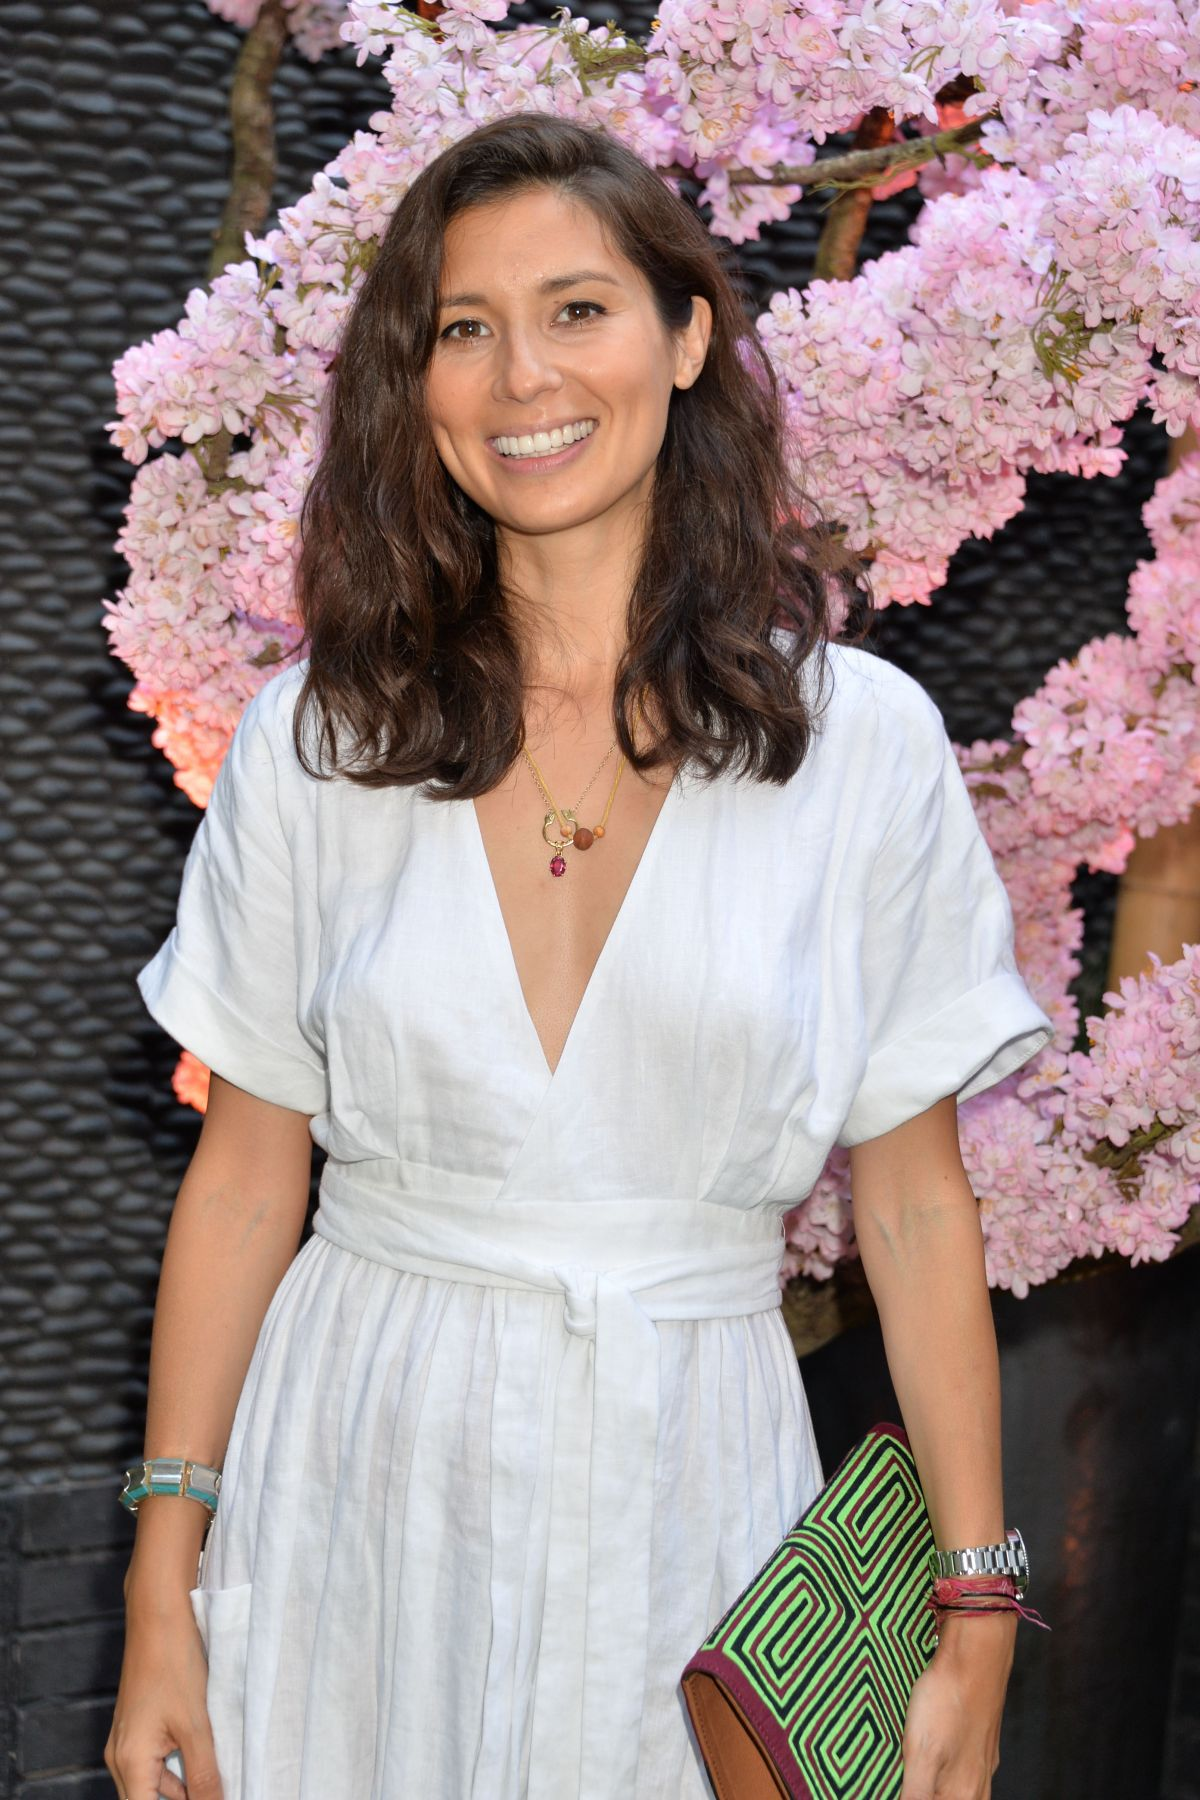 JASMINE HEMSLEY at Warner Music and GQ Summer Party in London 07/05/2017